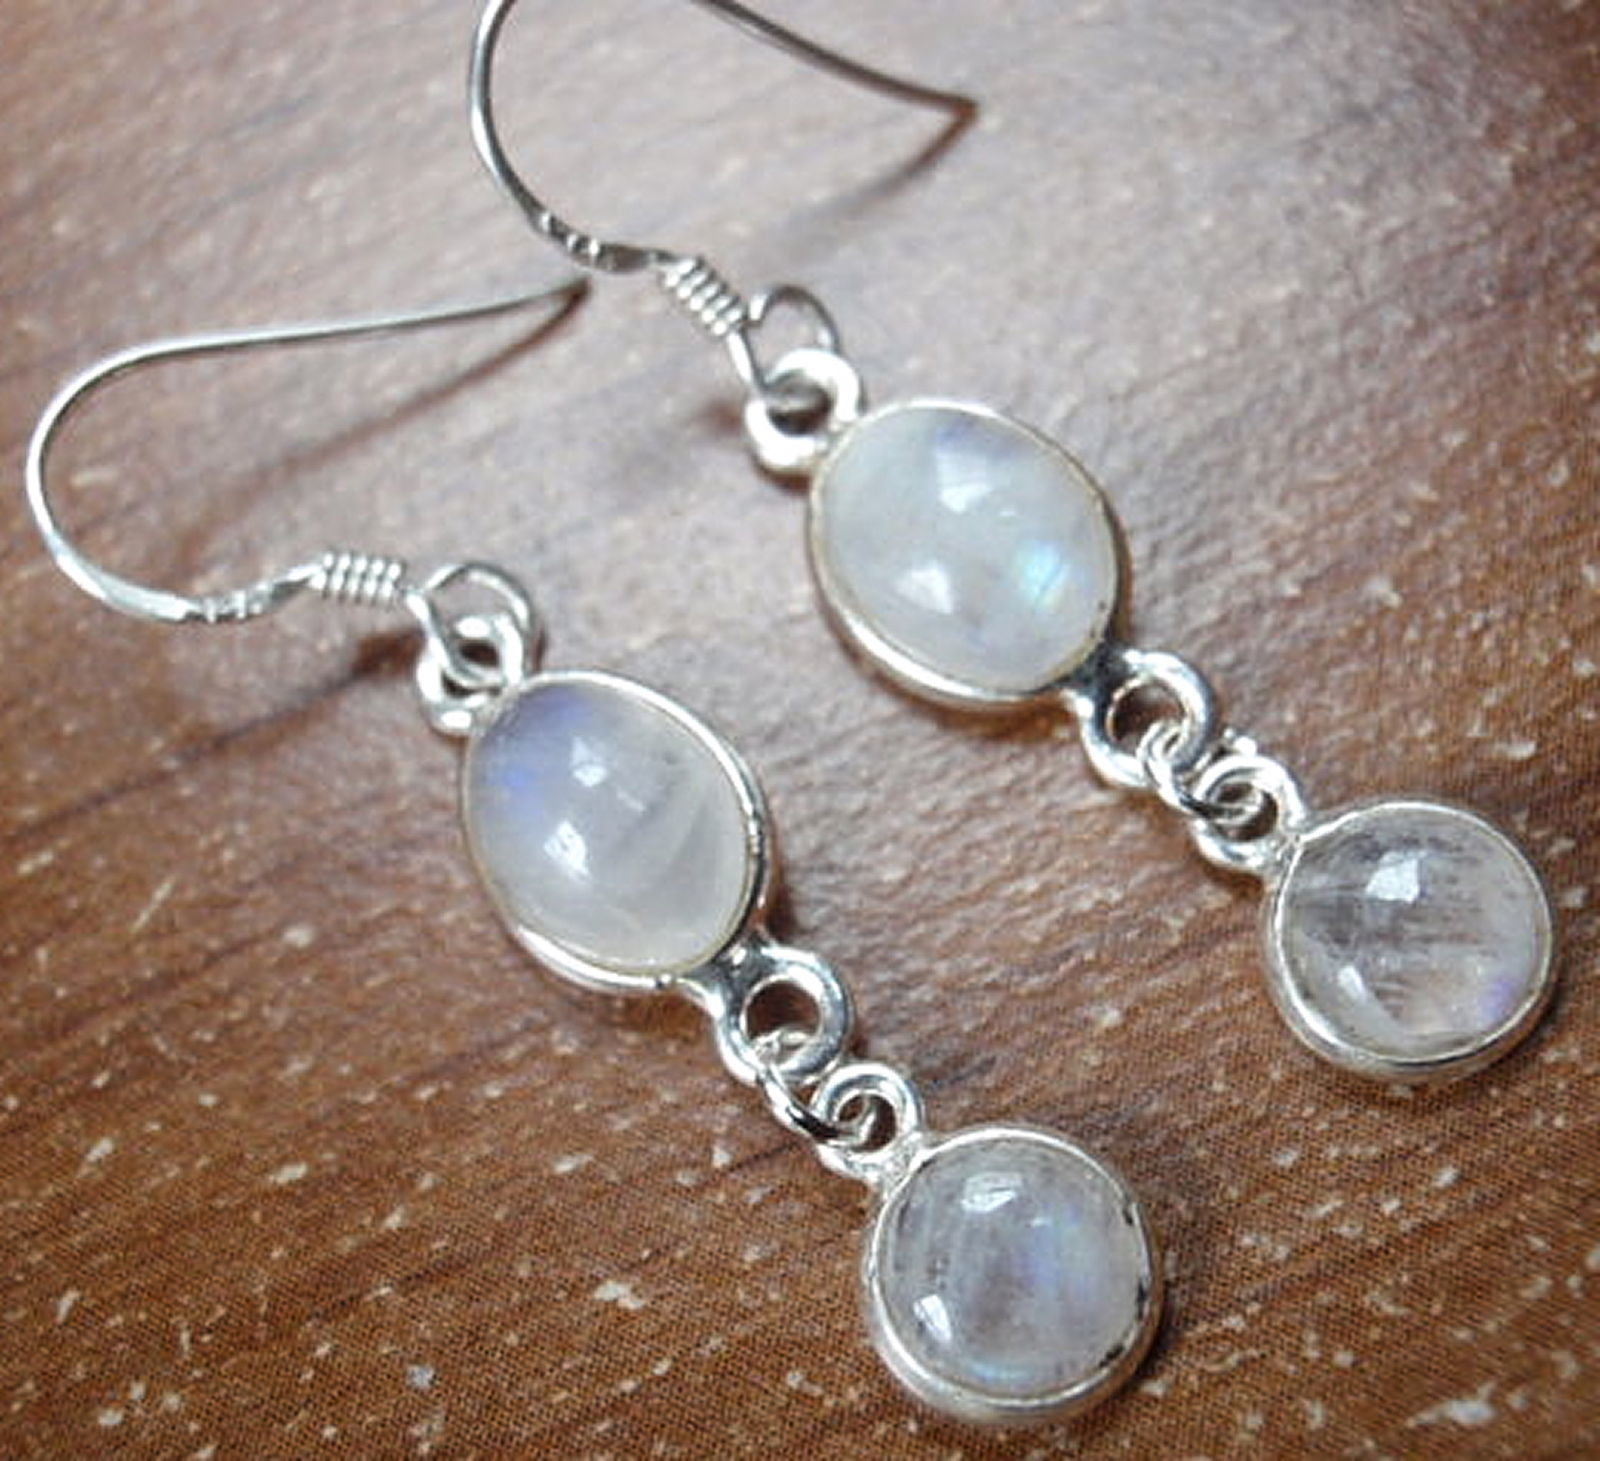 Primary image for Moonstone Dangle Earrings 925 Sterling Silver Double Gem Corona Sun Jewelry 771r